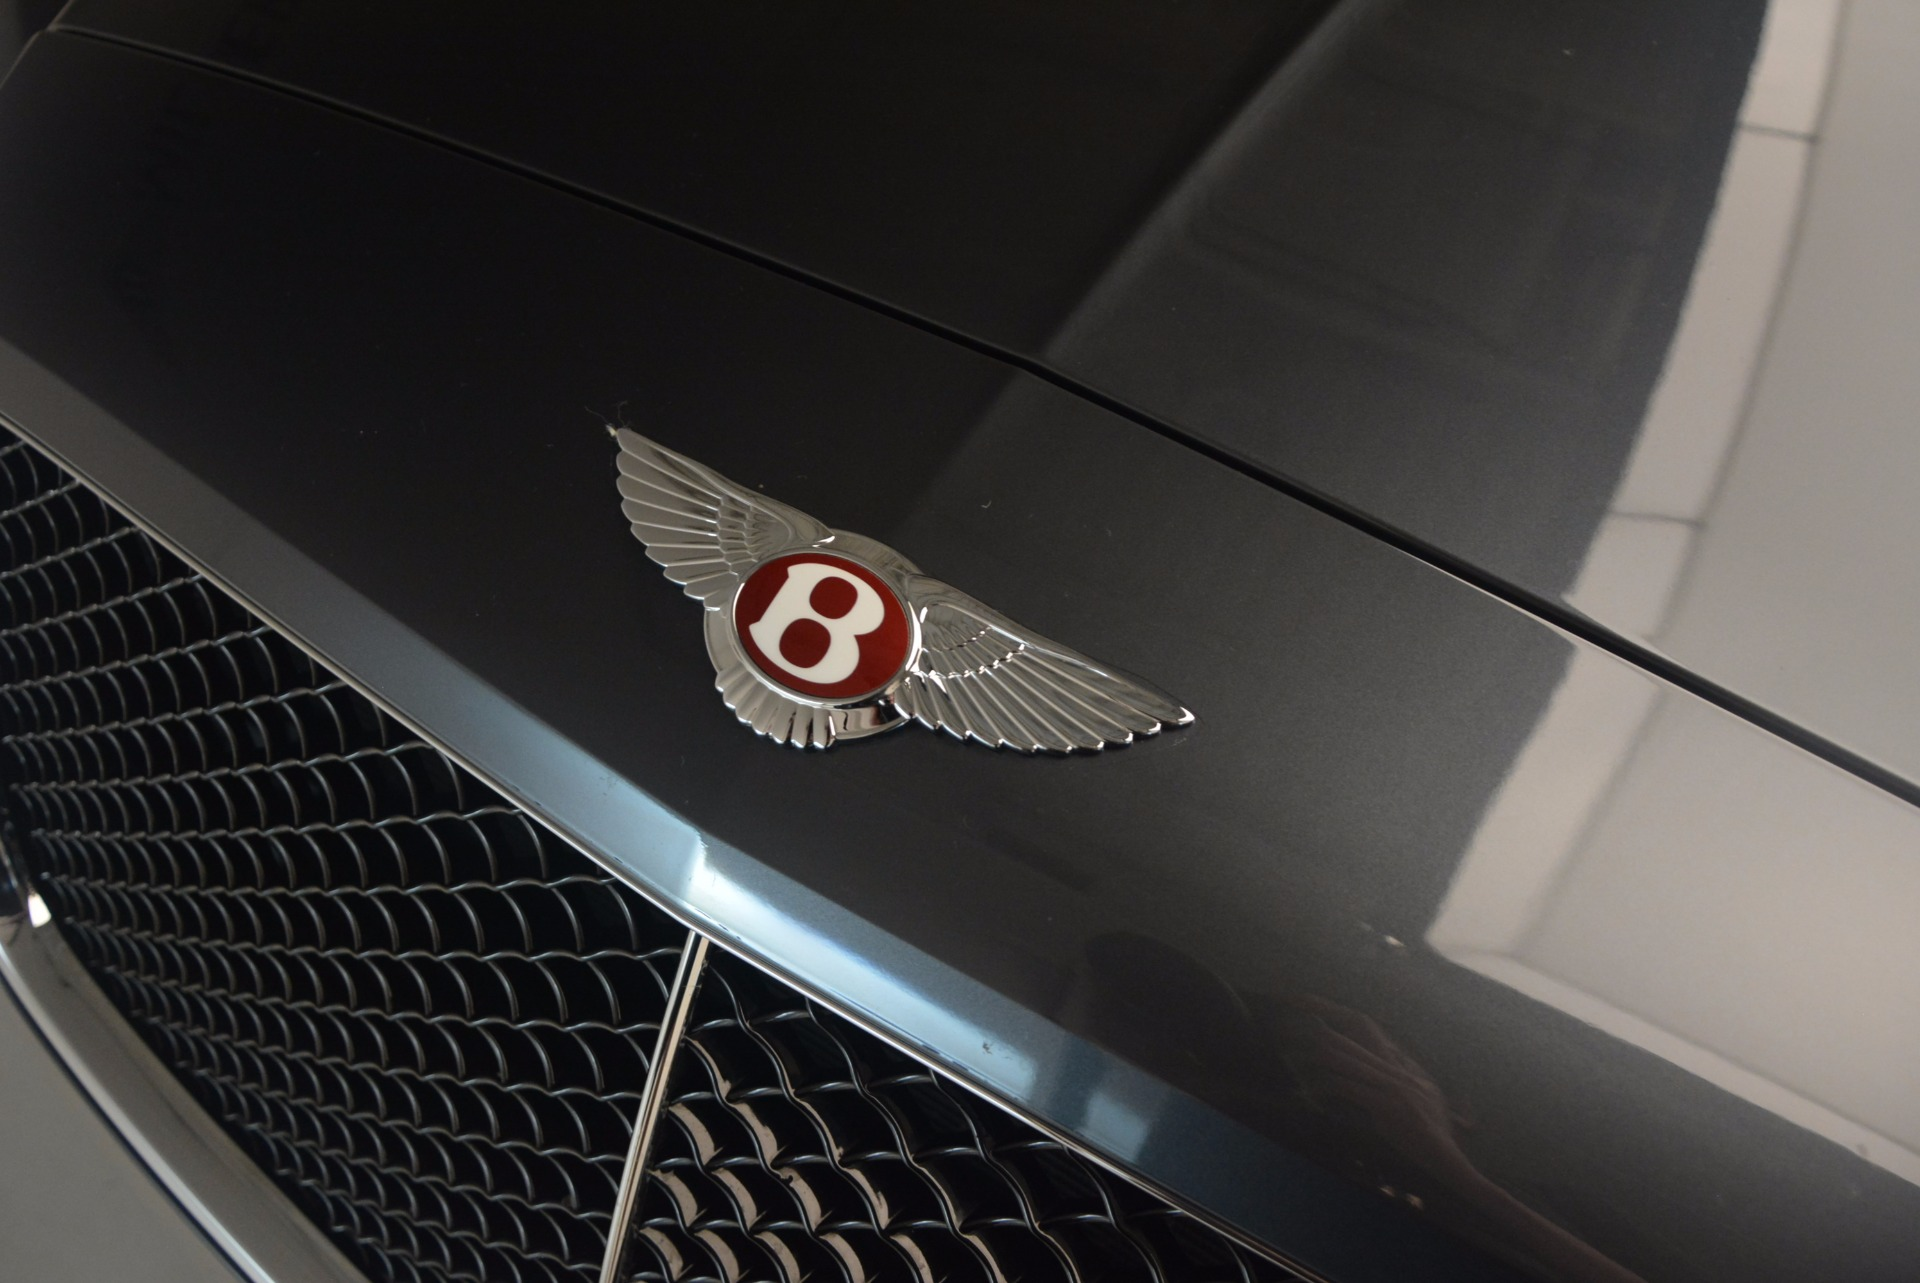 Used 2013 Bentley Continental GT V8 Le Mans Edition, 1 of 48 For Sale In Westport, CT 1288_p29